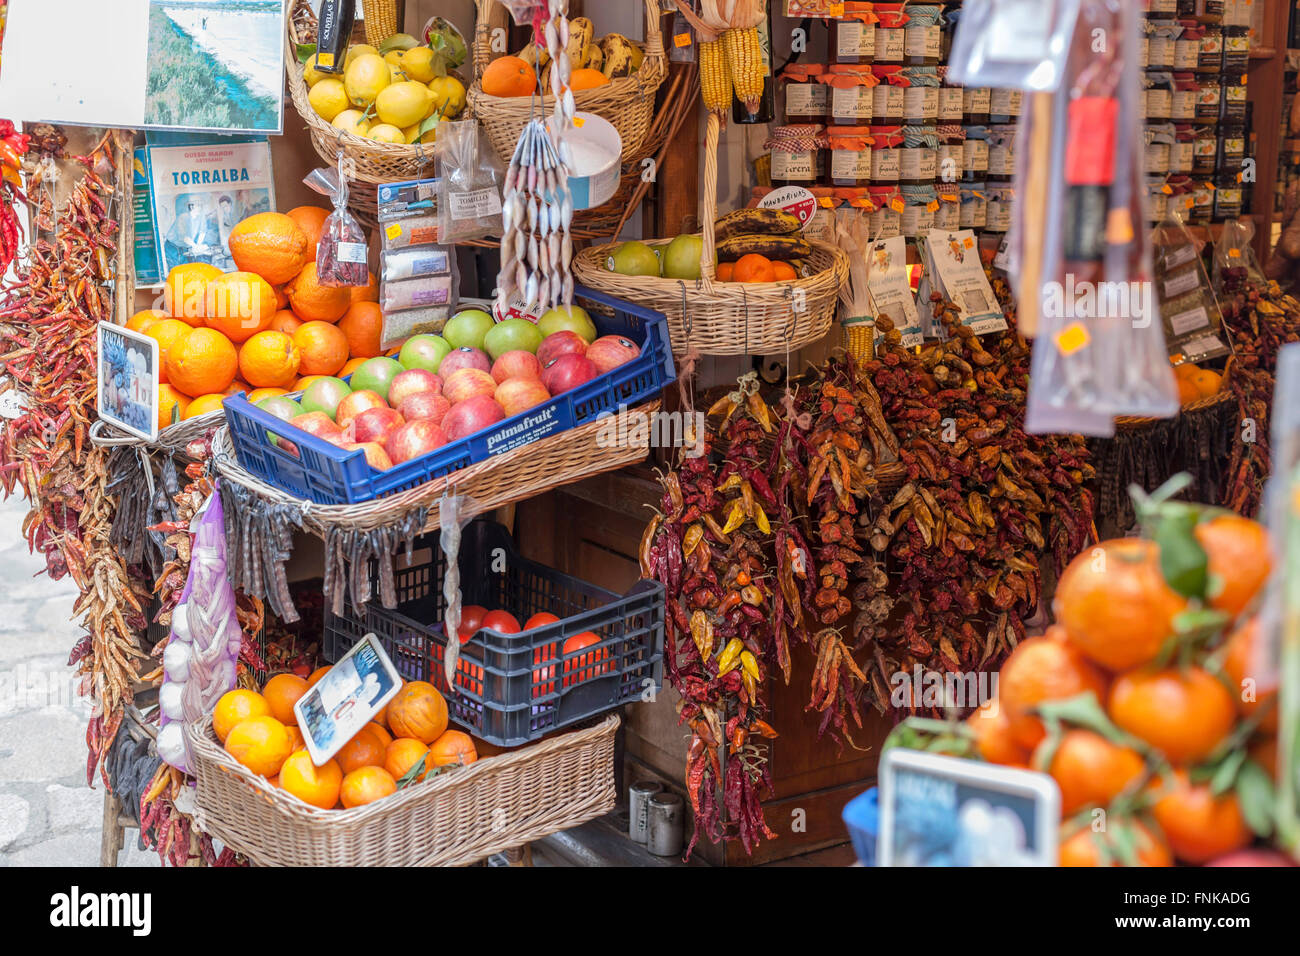 Shop typical products in Palma de Mallorca, Balearic Islands, Spain. Stock Photo